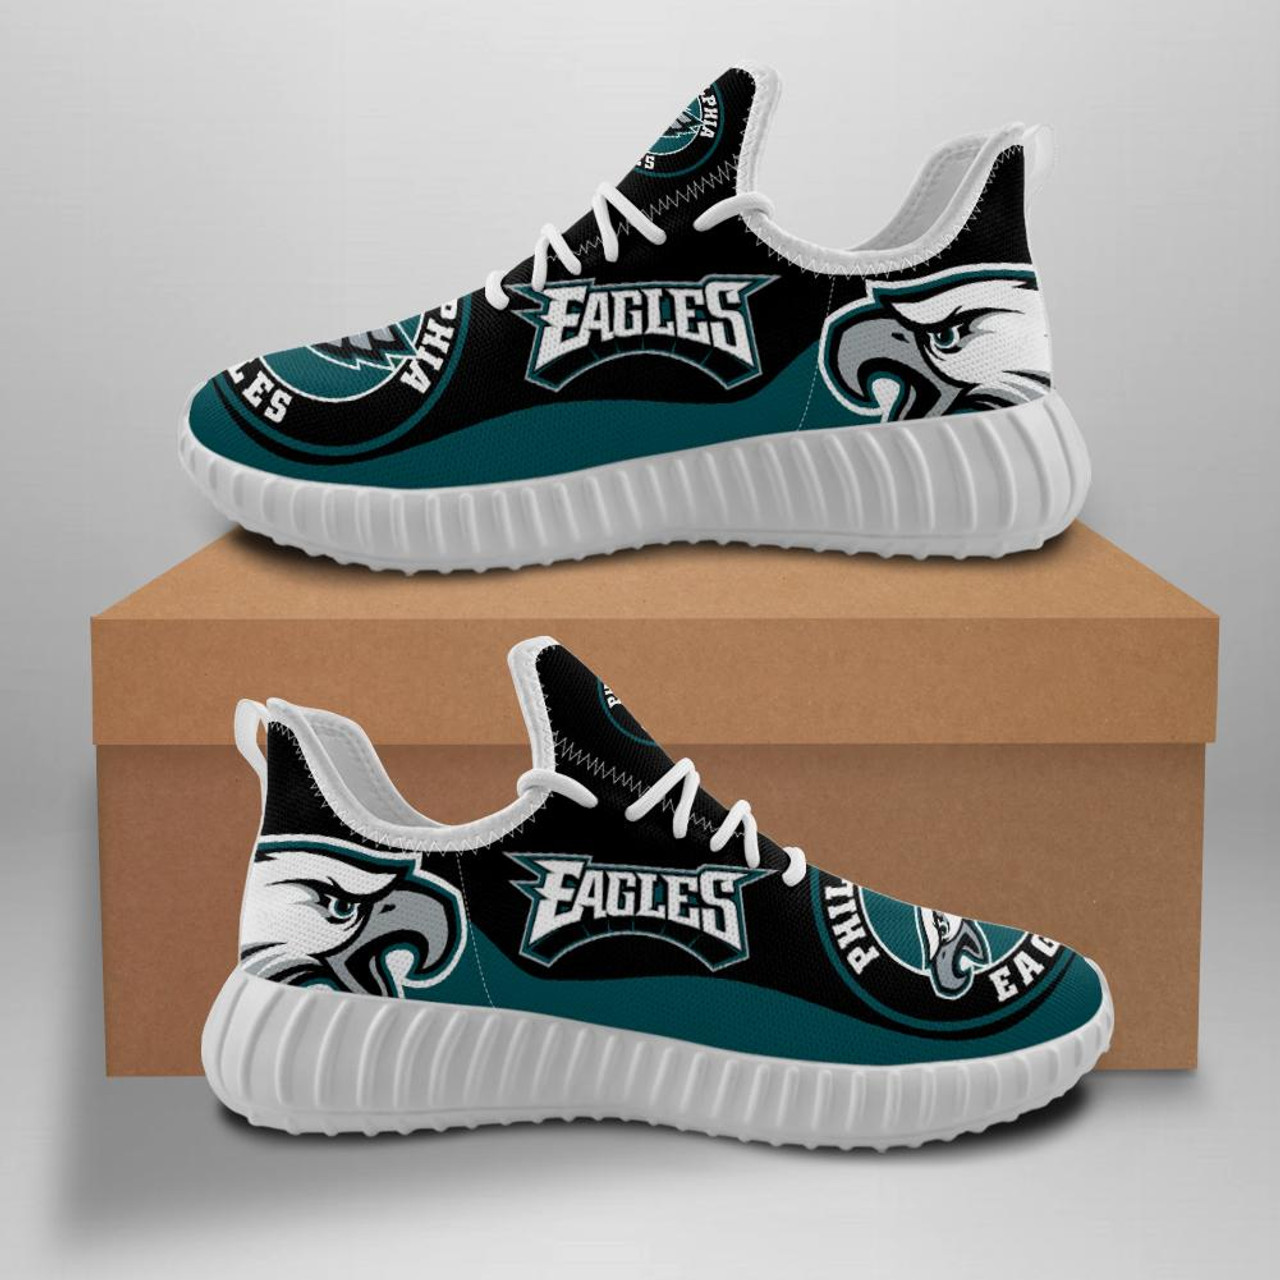 **(OFFICIAL-PHILADELPHIA-EAGLES-TEAM-WHITE-BOTTOM-SOLES-FASHION-FANS-CUSTOM-SPORT-SHOES/CLASSIC-OFFICIAL-CUSTOM-EAGLES-TEAM-3D-LOGOS & CLASSIC-OFFICIAL-EAGLES-MIDNIGHT-BLACK & GREEN-TEAM-COLORS/TRENDY-PREMIUM-EAGLES-TEAM-GAME-DAY-SPORT-SHOES)**